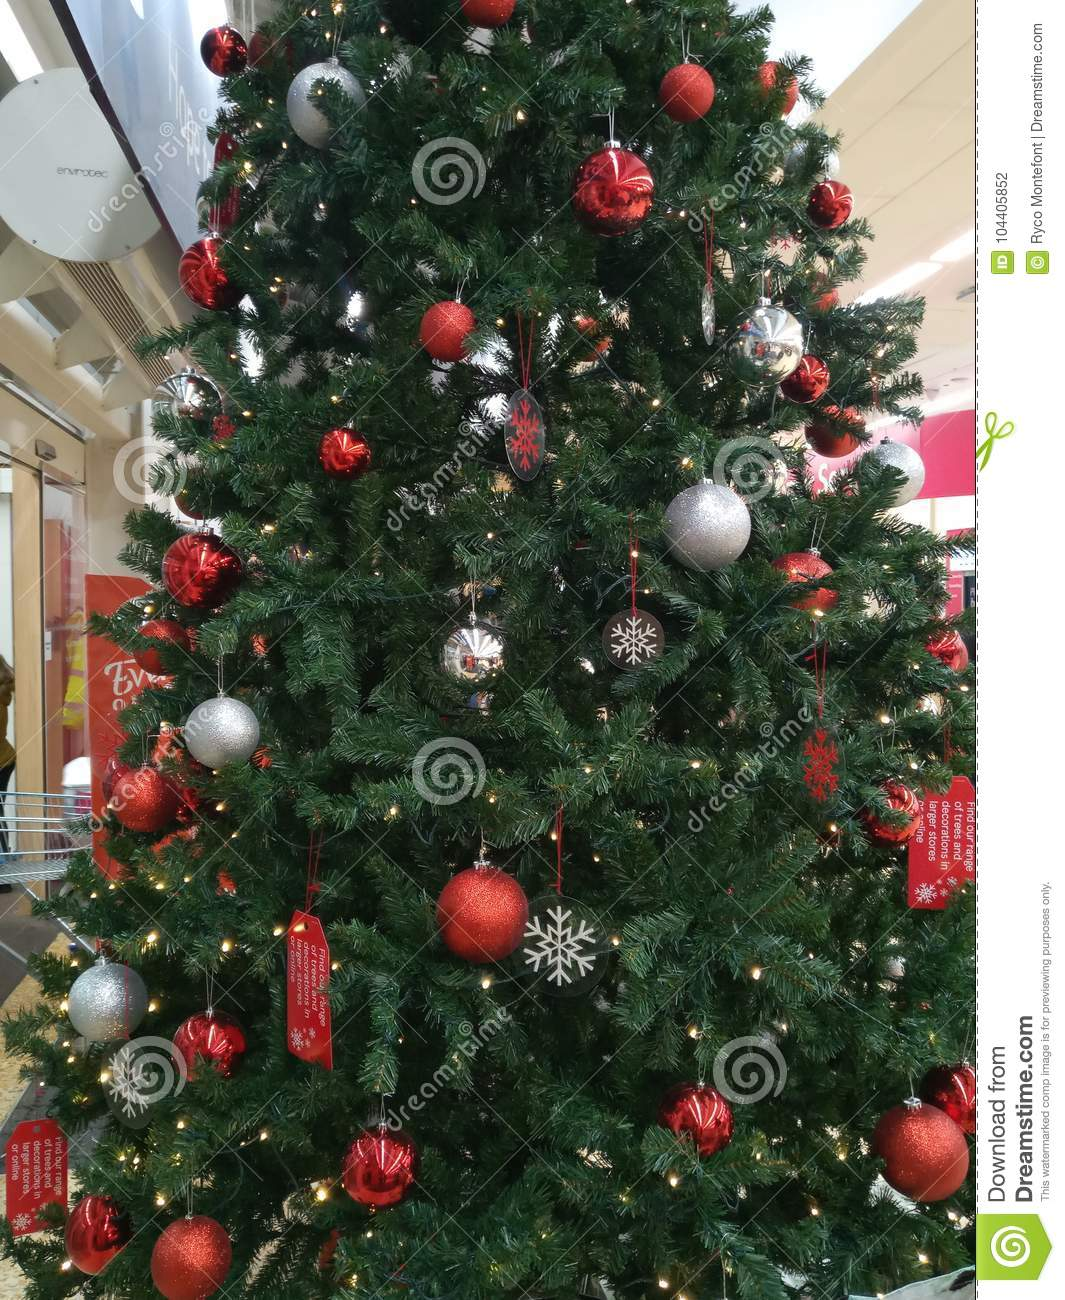 Christmas Decorations In Shopping Malls: Large Green Christmas Tree With Bright Coloured